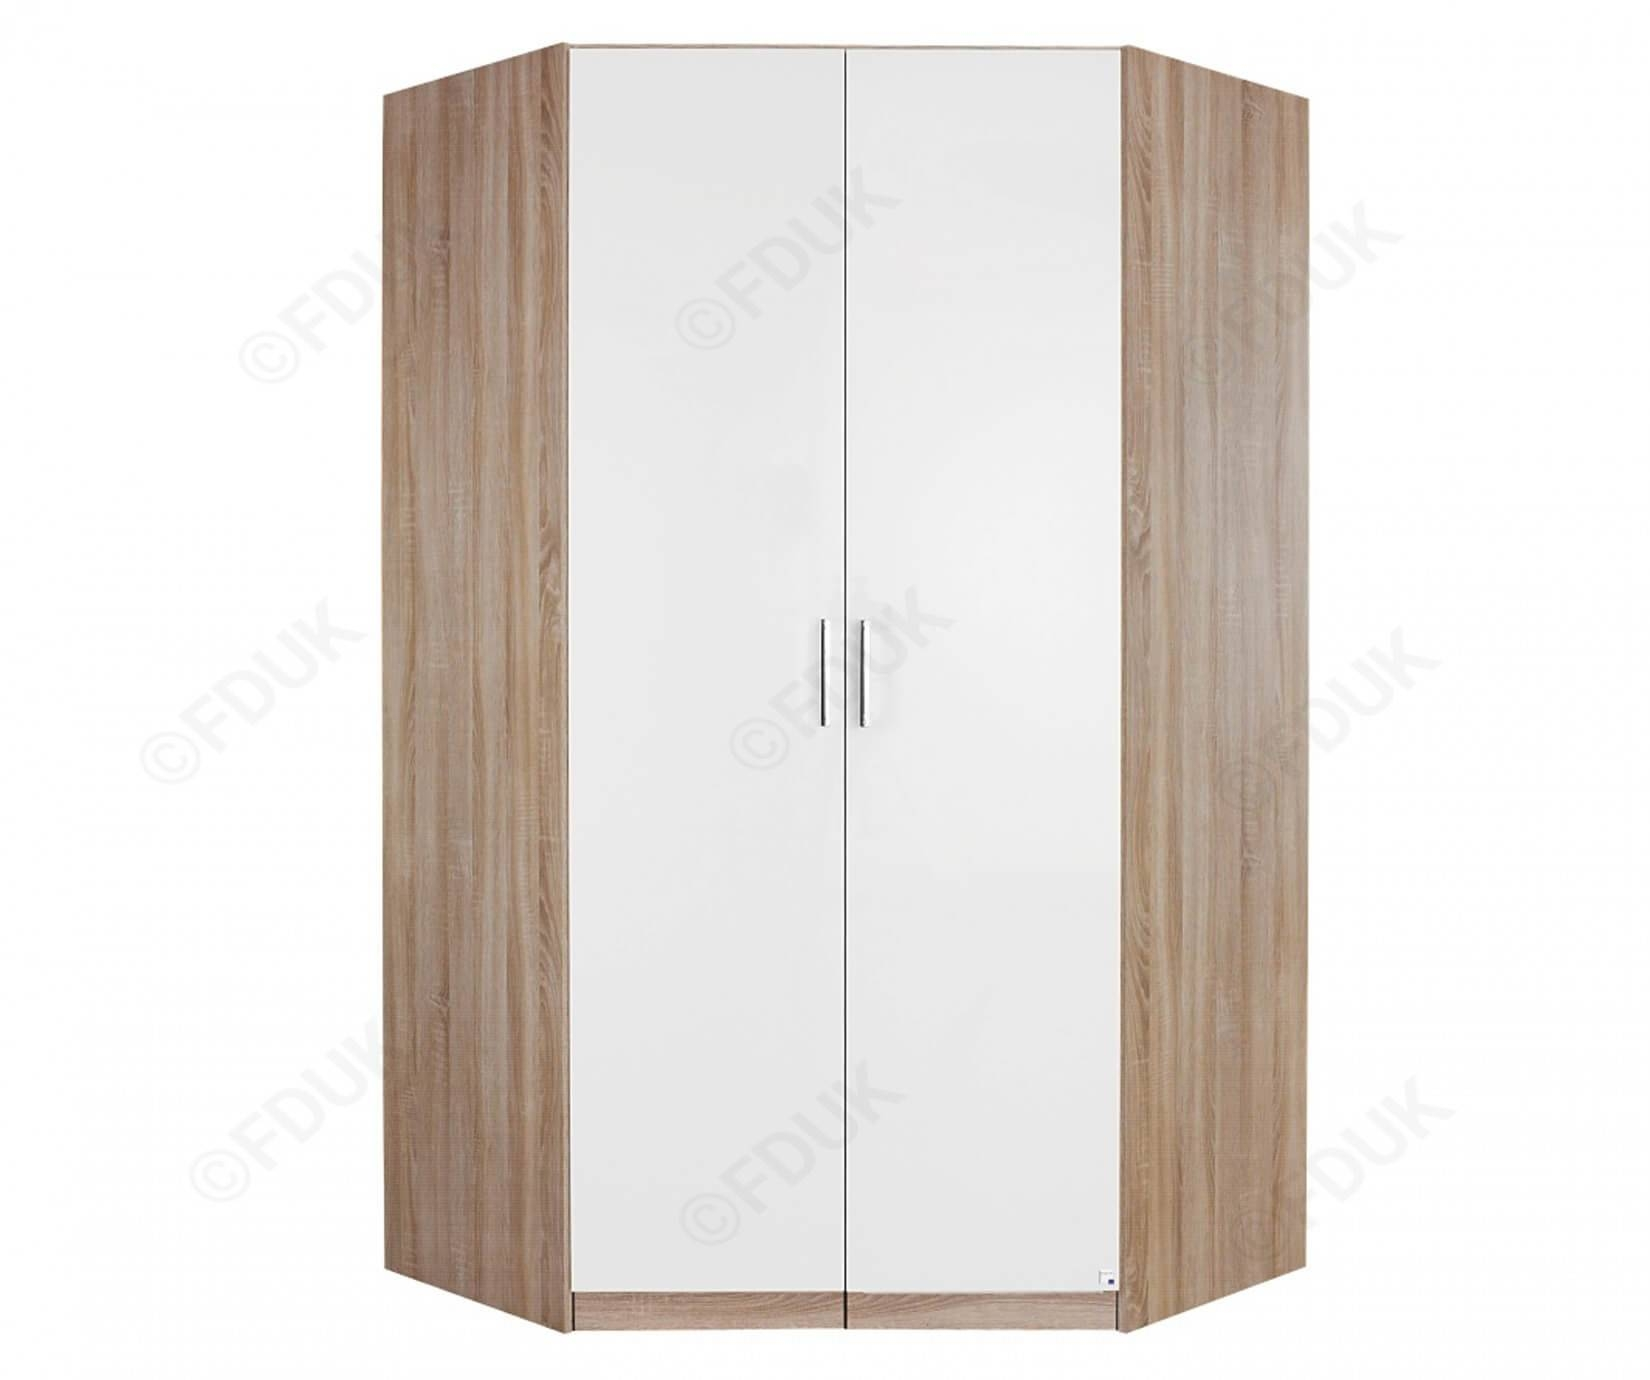 Rauch Furniture Samos | Samos 2 Door Corner Wardrobe Regarding 2 Door Corner Wardrobes (View 8 of 15)